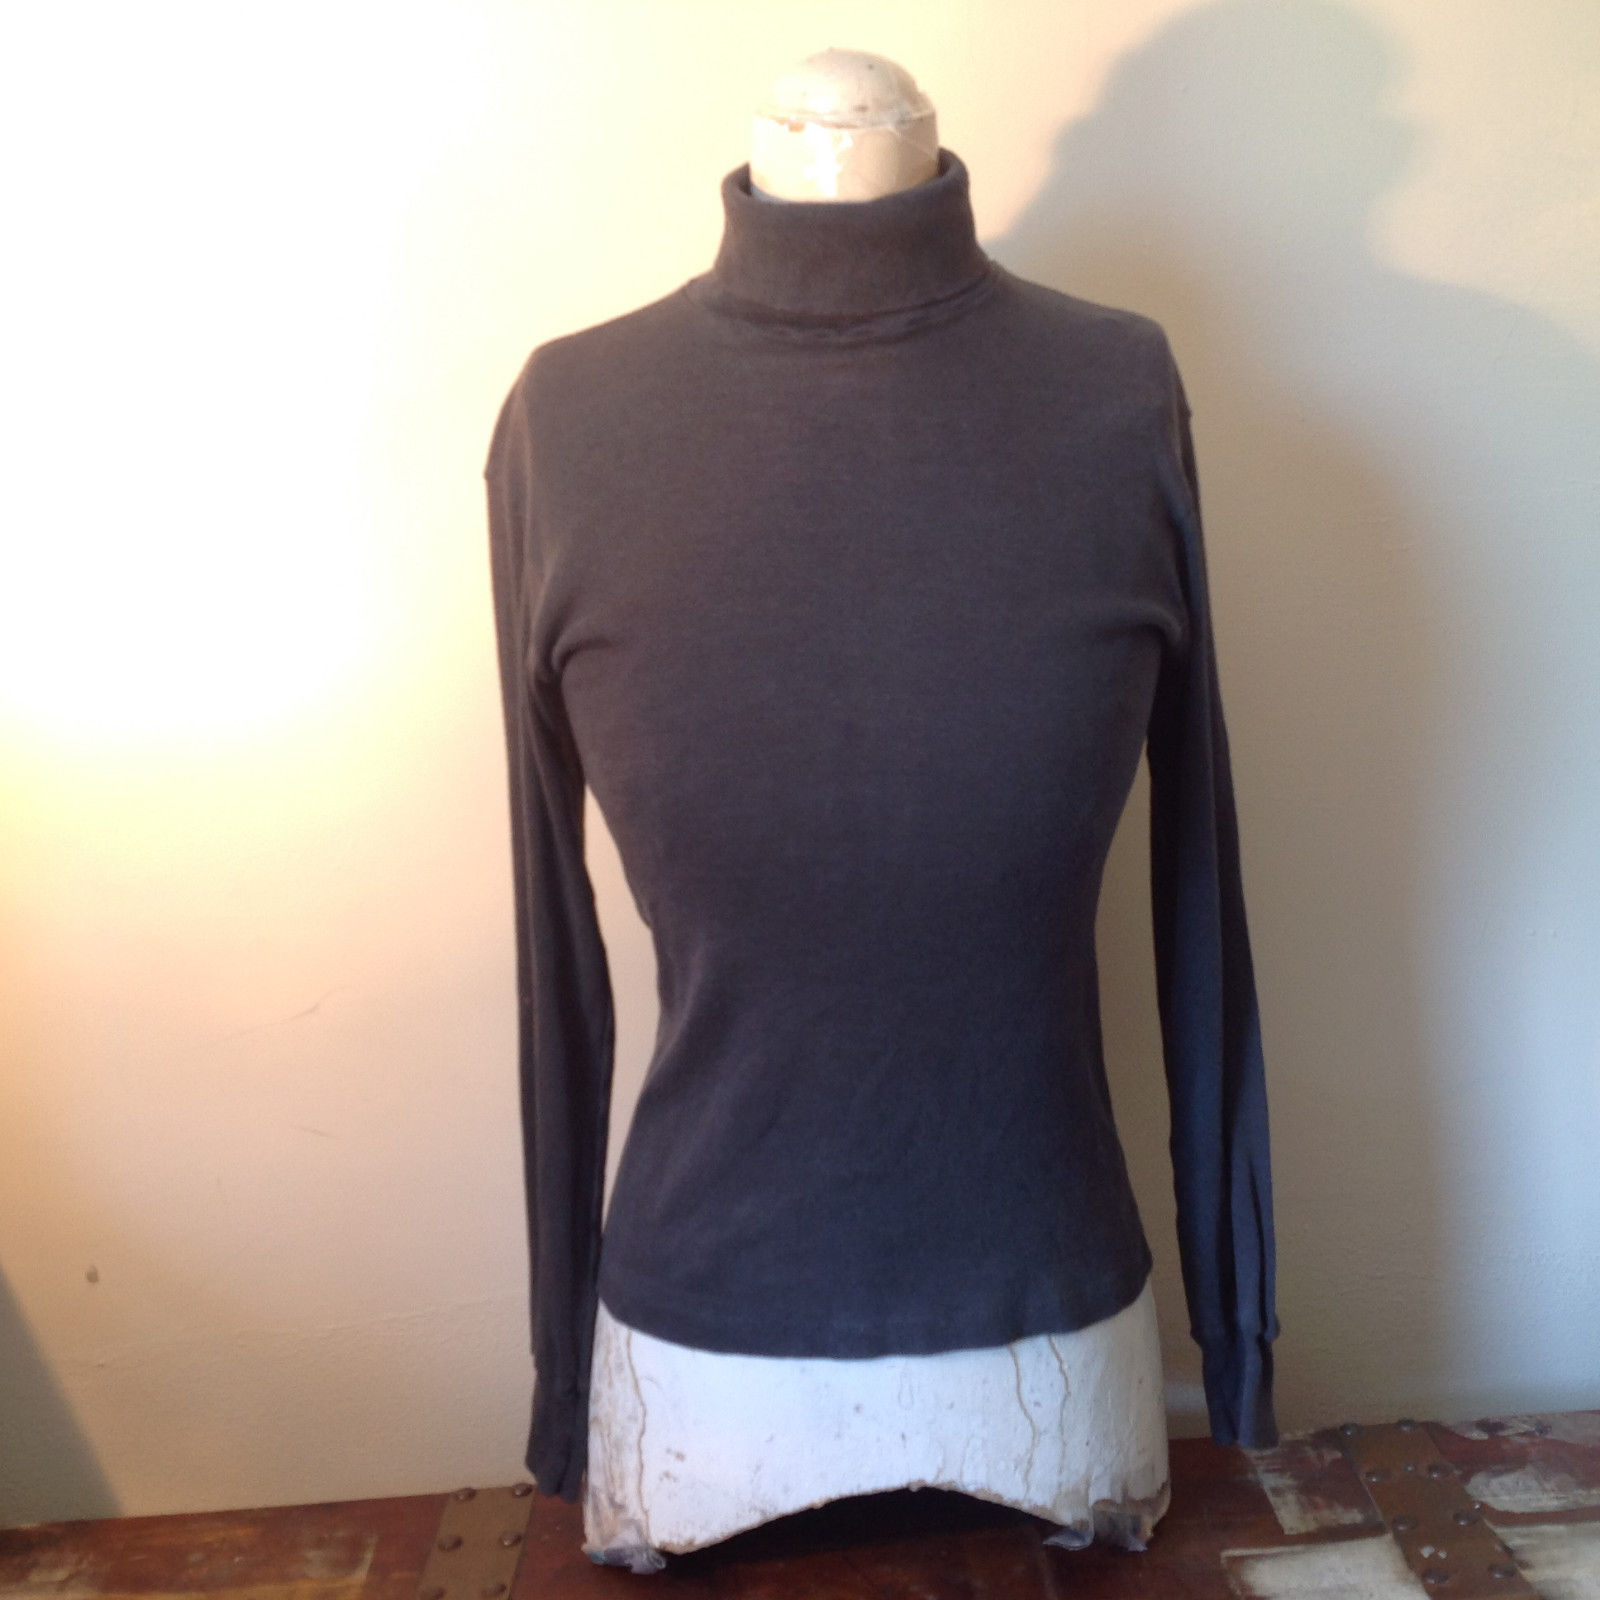 Fruit of the Loom Size Medium Long Sleeve Gray Turtleneck 50 Percent Cotton